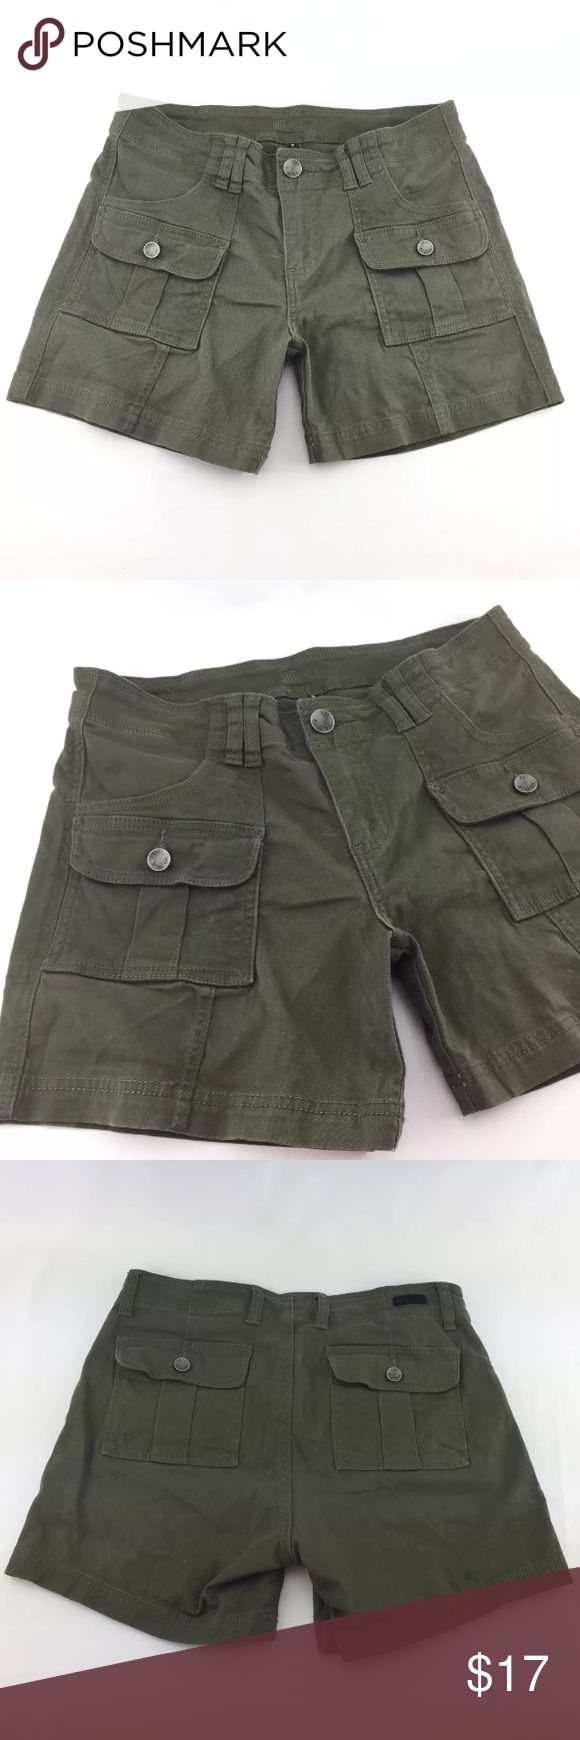 Jut From The Kloth Sz 8 Olive Green Shorts Light wash wear.  Measurements (in inches):  Waist - 32 + stretch Hip - 39 Rise - 9.5 Inseam - 5 Kut from the Kloth Shorts